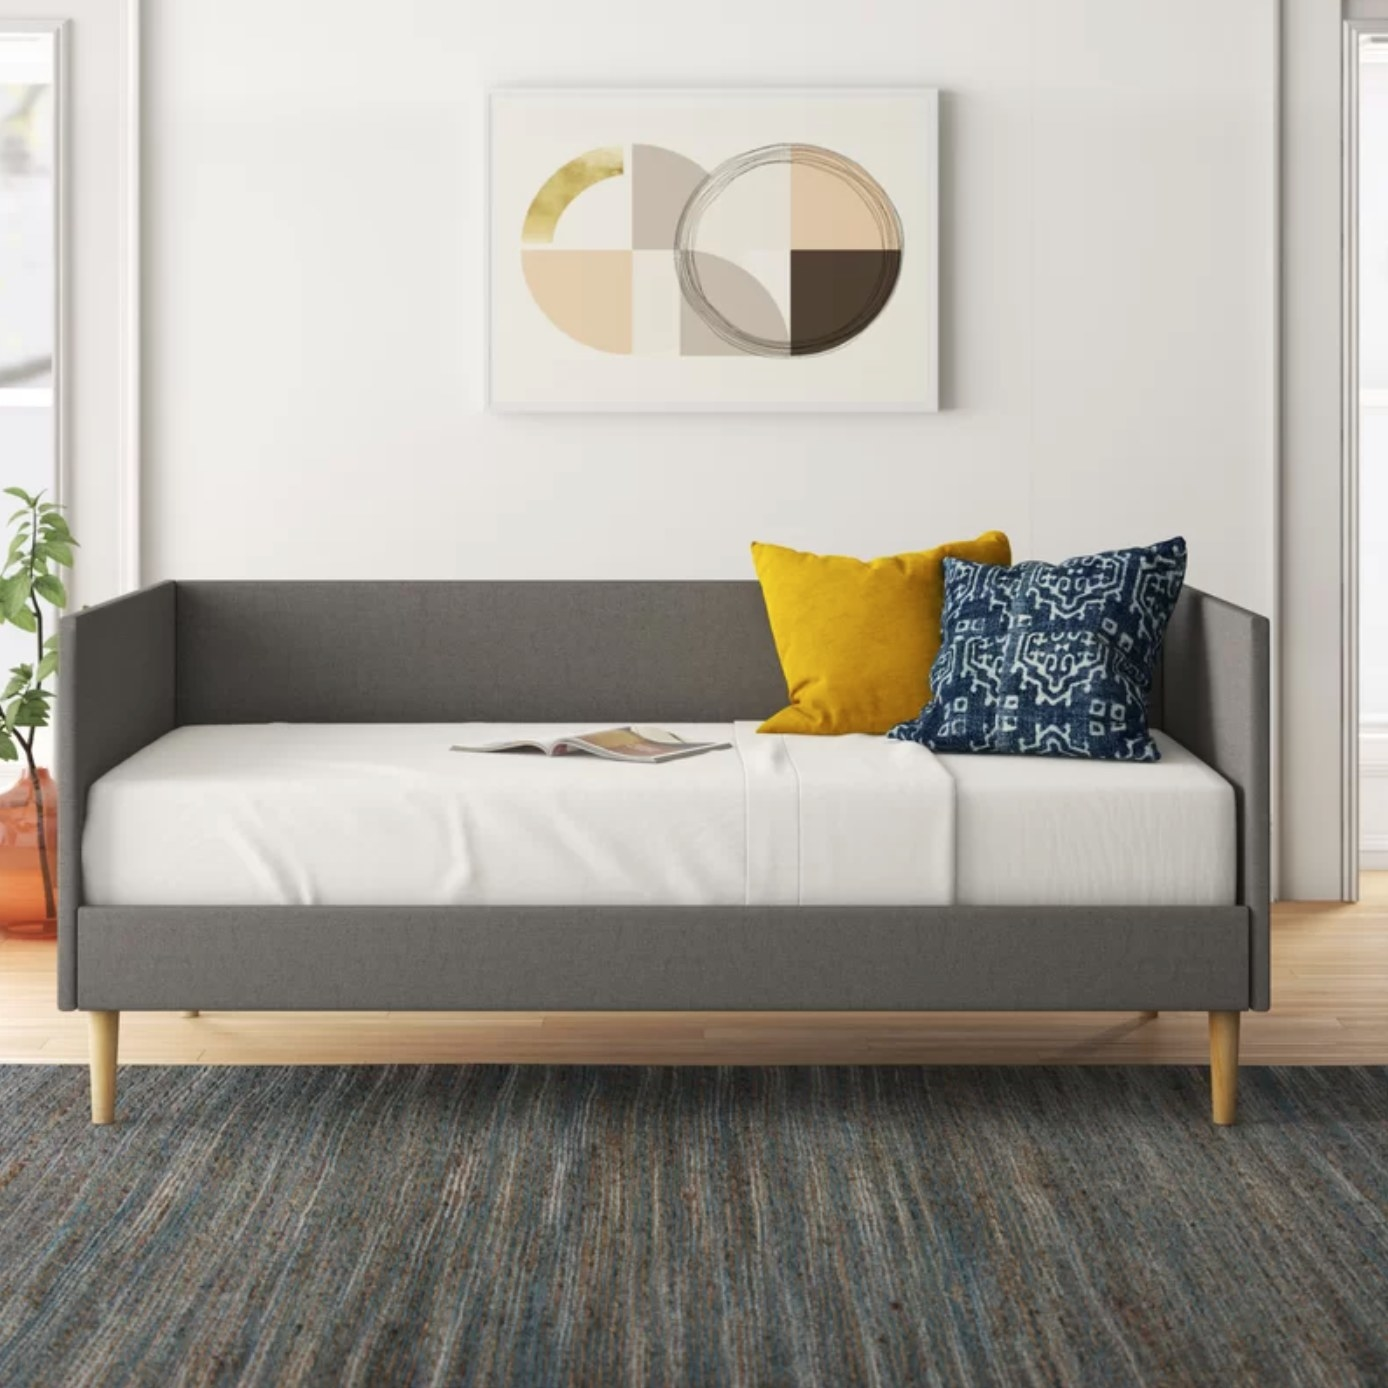 The daybed in gray linen